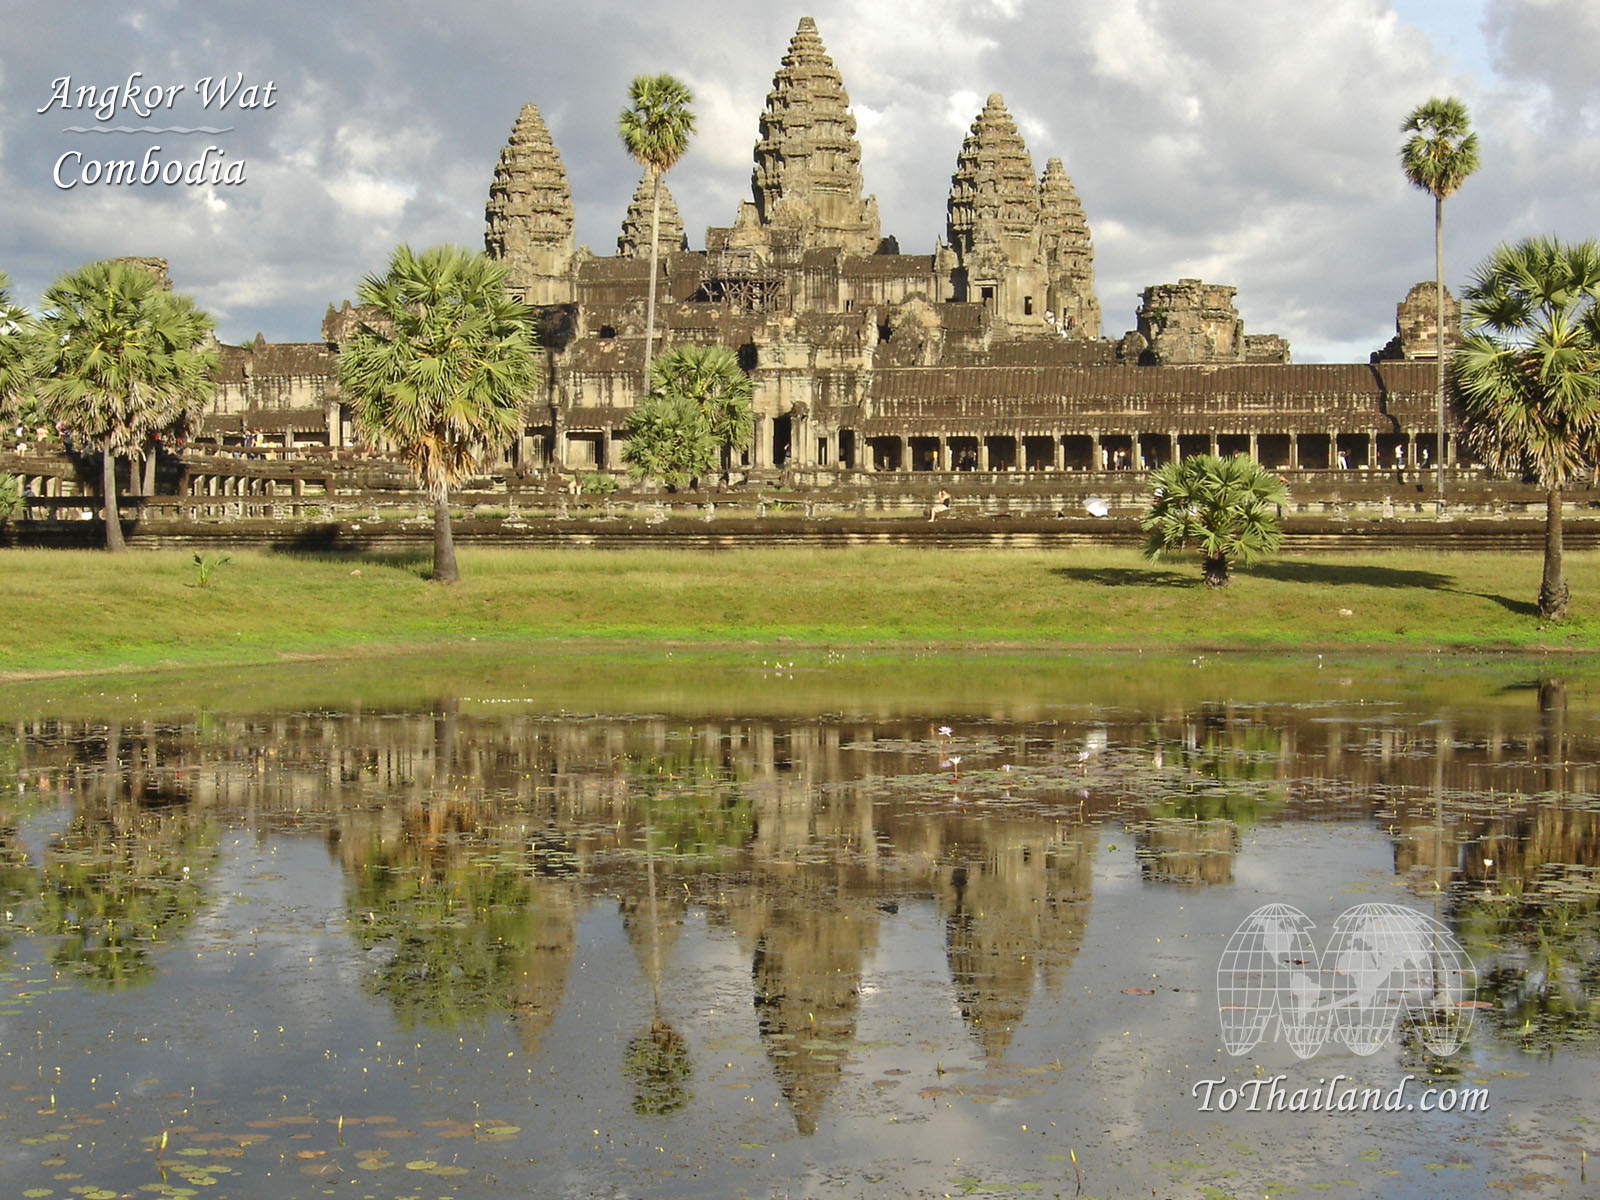 Siem reap cambodia travel guide tourist destinations for Historical vacation spots in the south